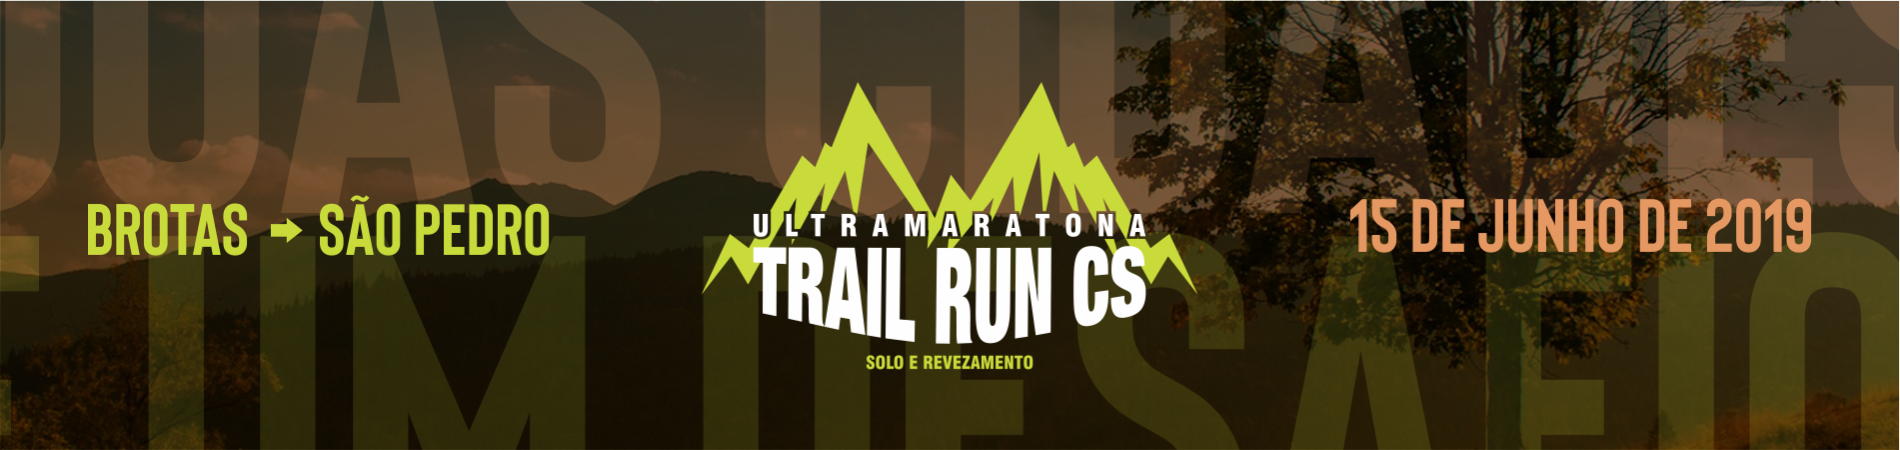 ULTRAMARATONA TRAIL RUN CS